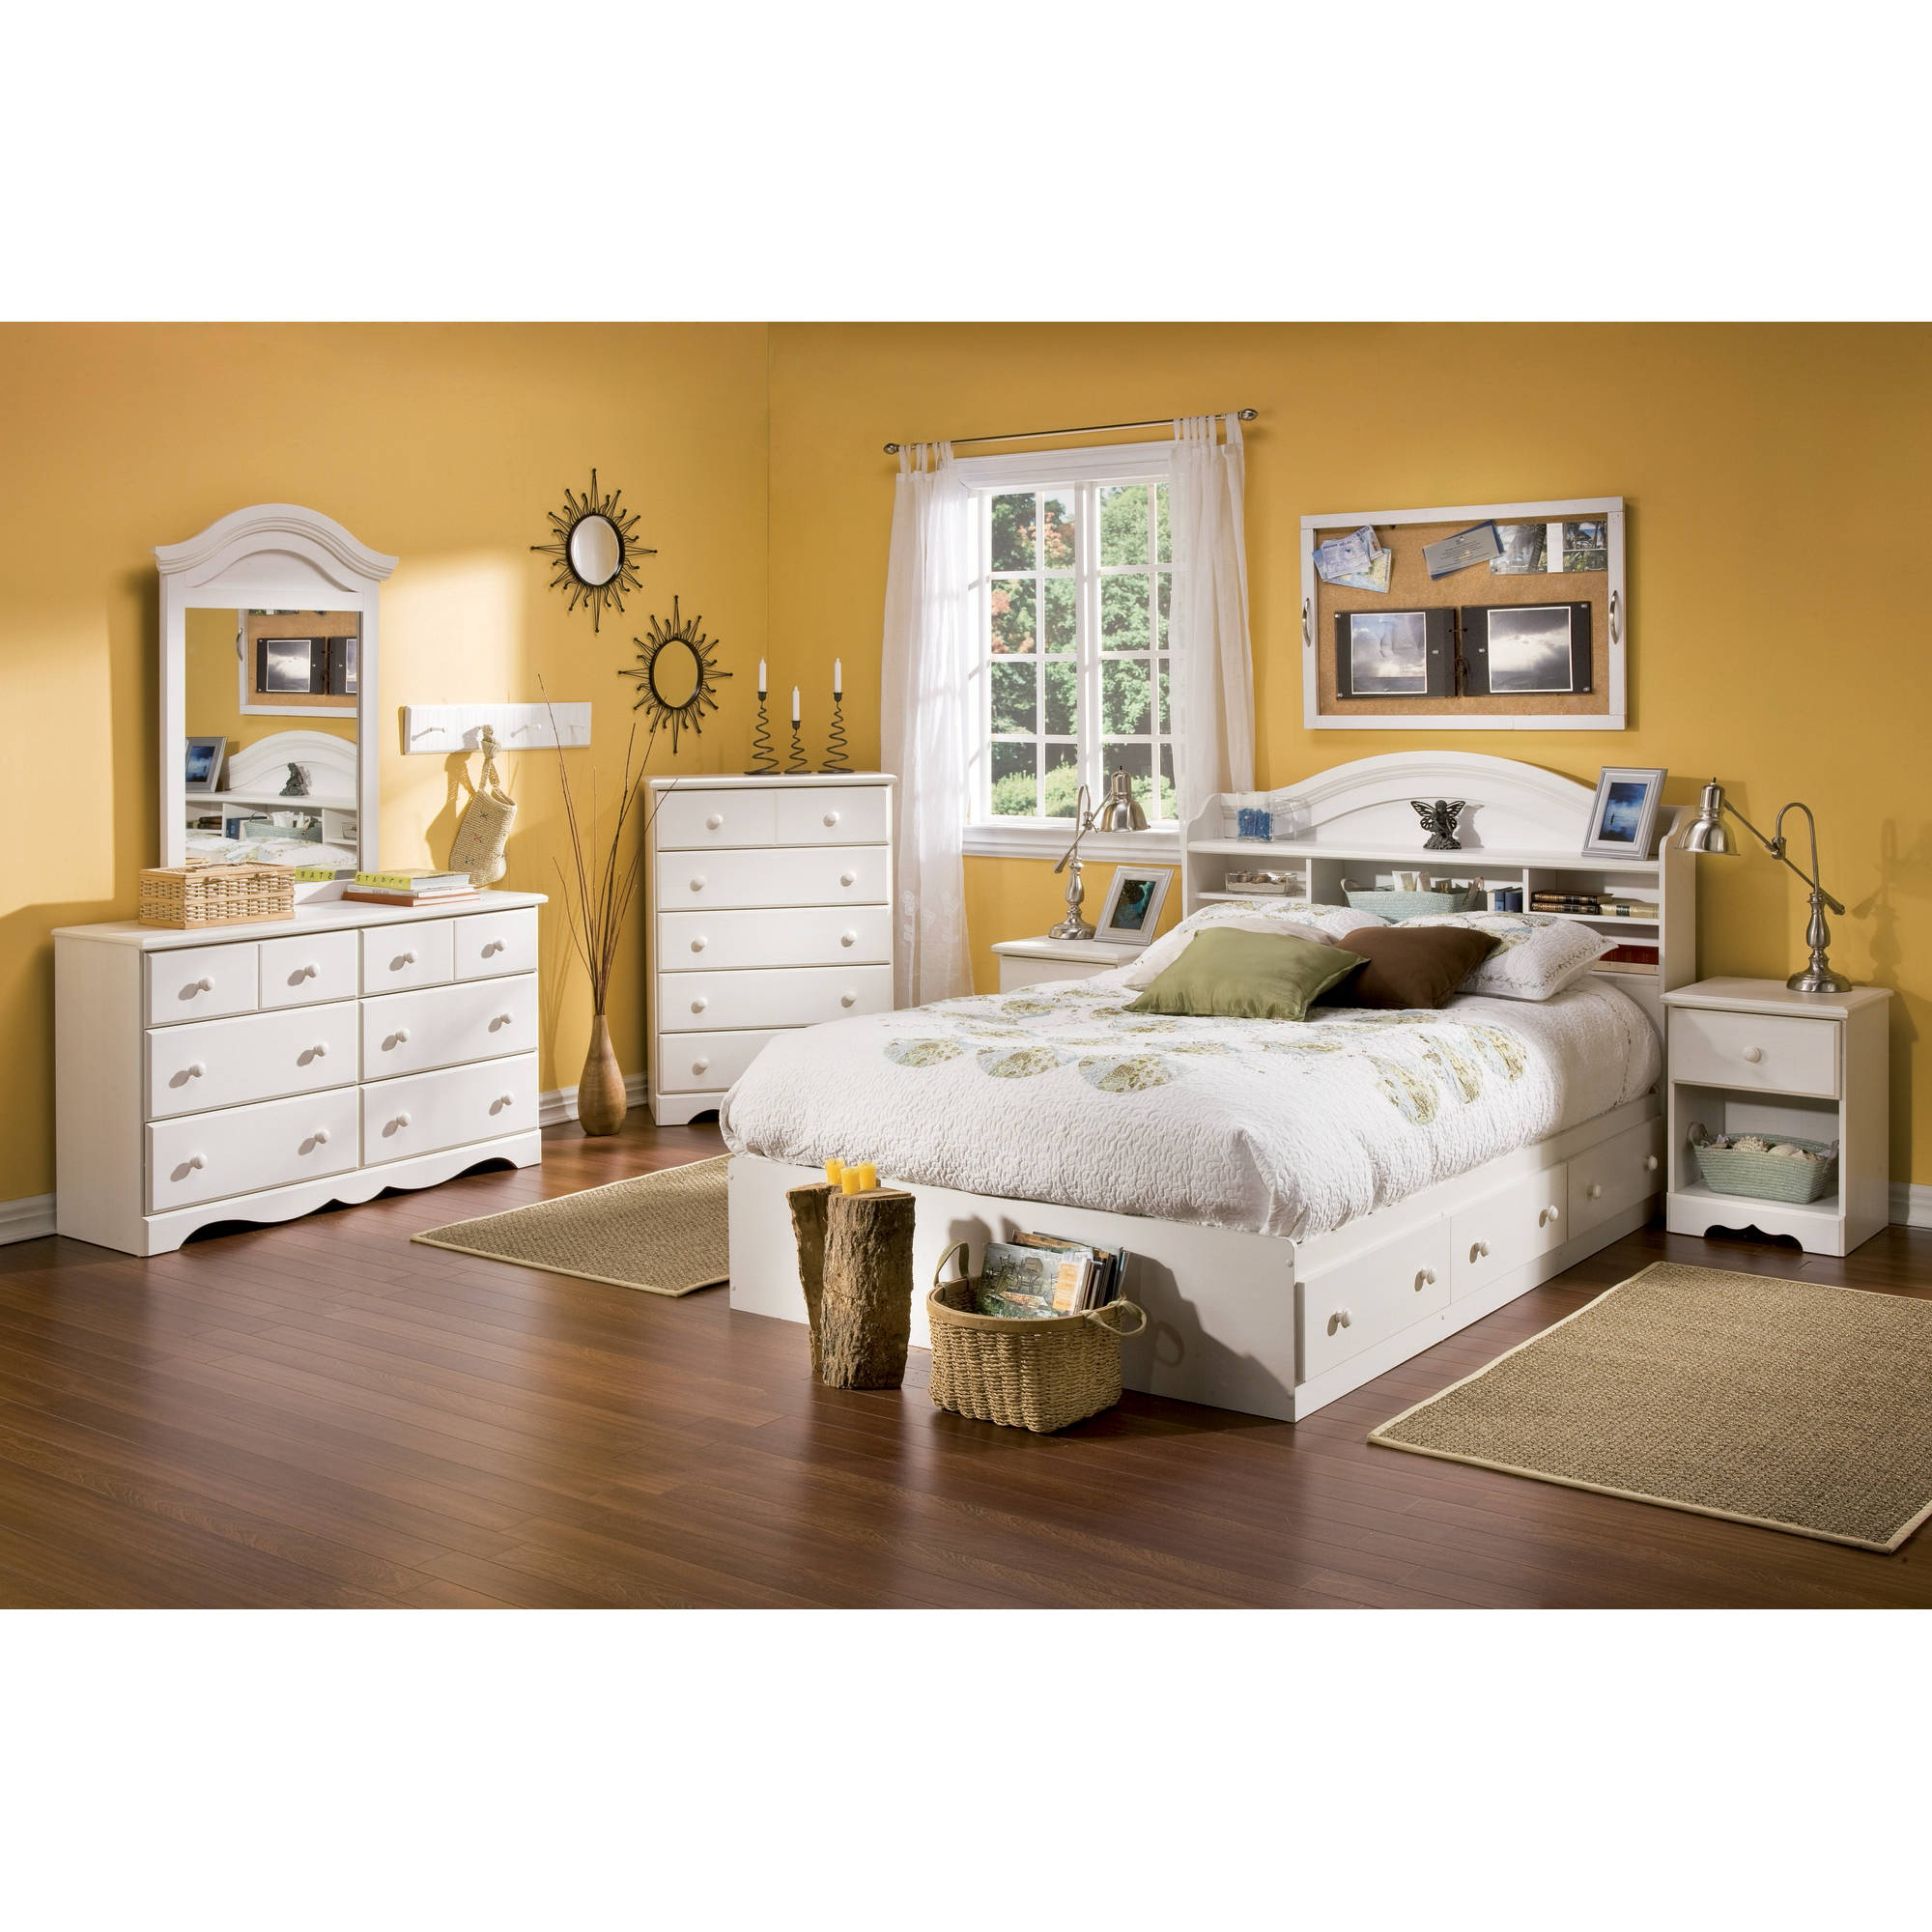 South Shore Summer Breeze 4 Piece Bedroom Set, White Wash, Multiple Sizes    Walmart.com